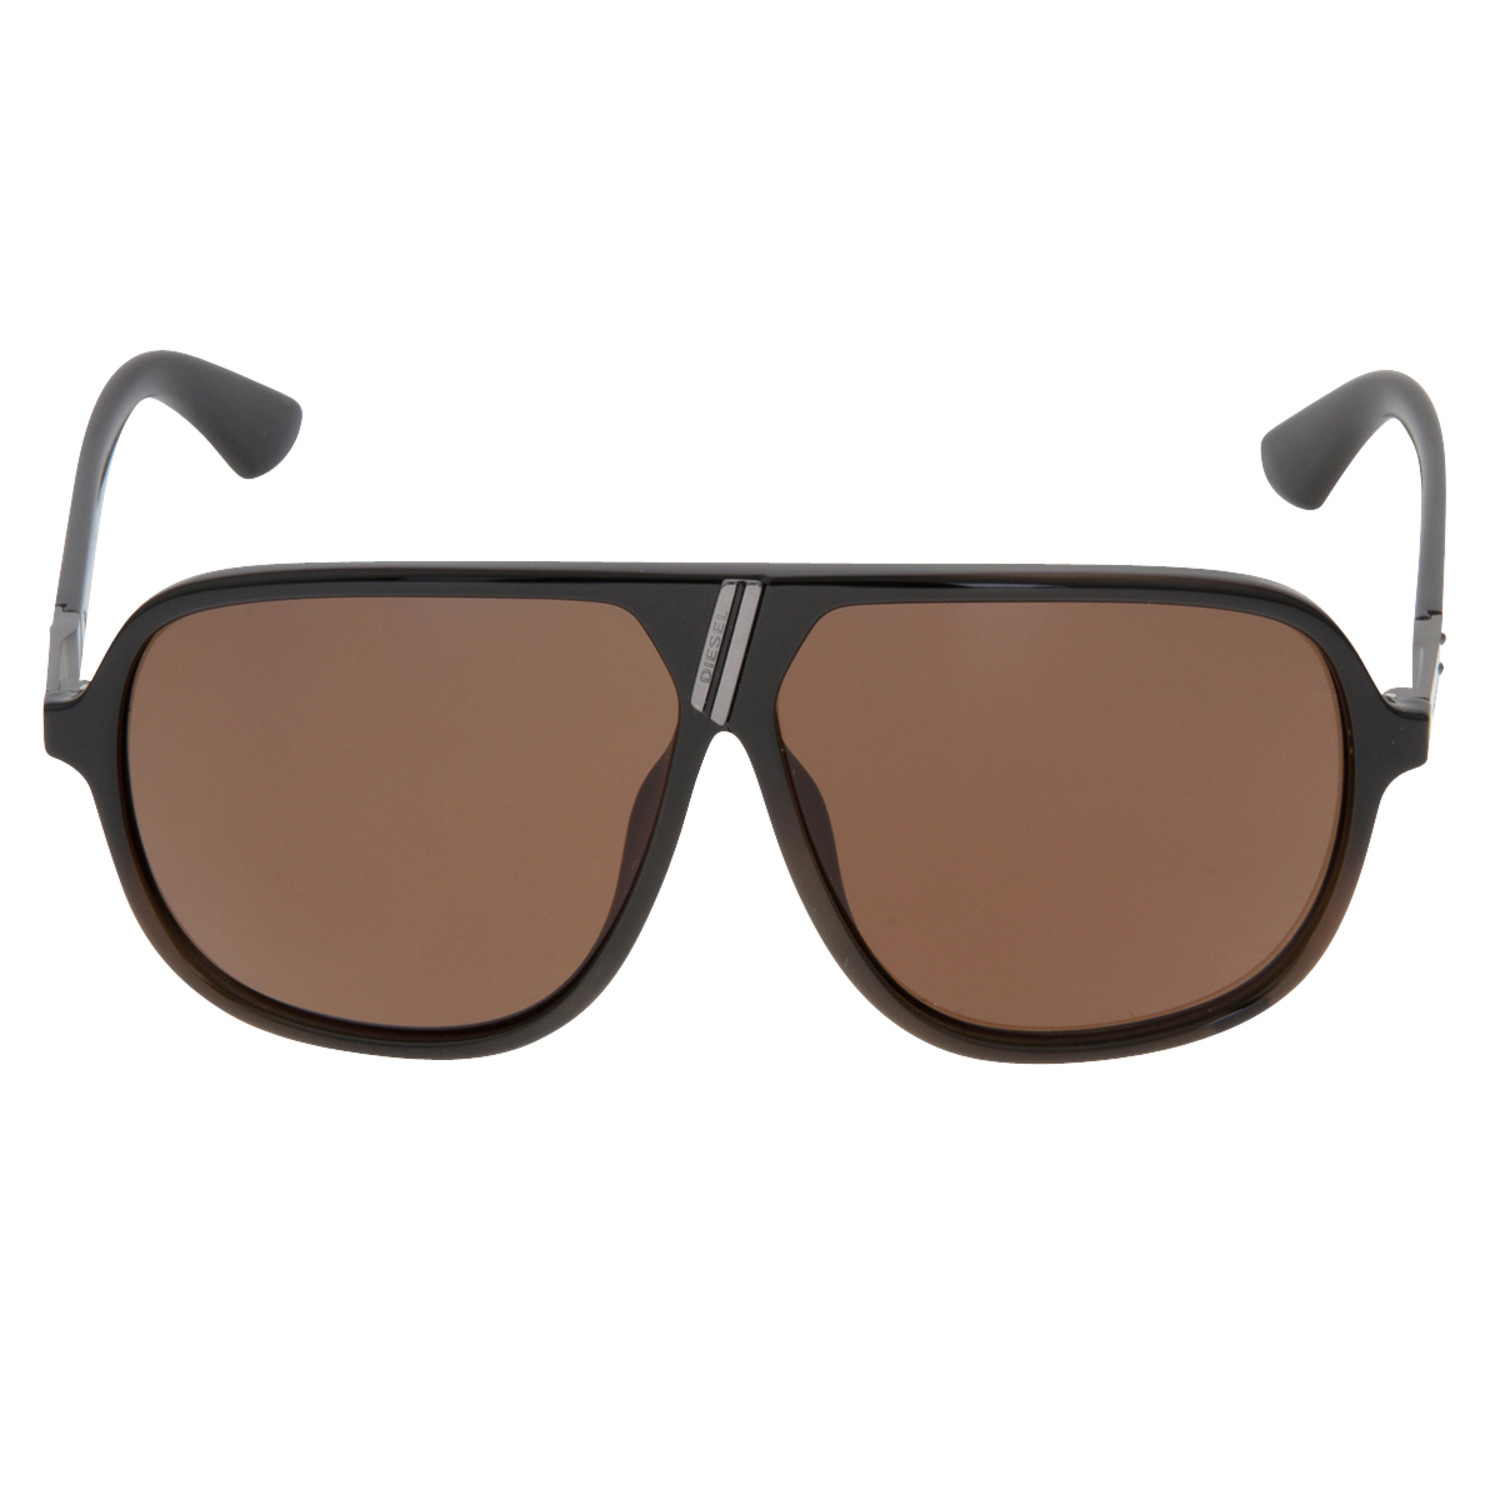 DL0058 Oversized Sunglasses Diesel TrEHZxY0yG